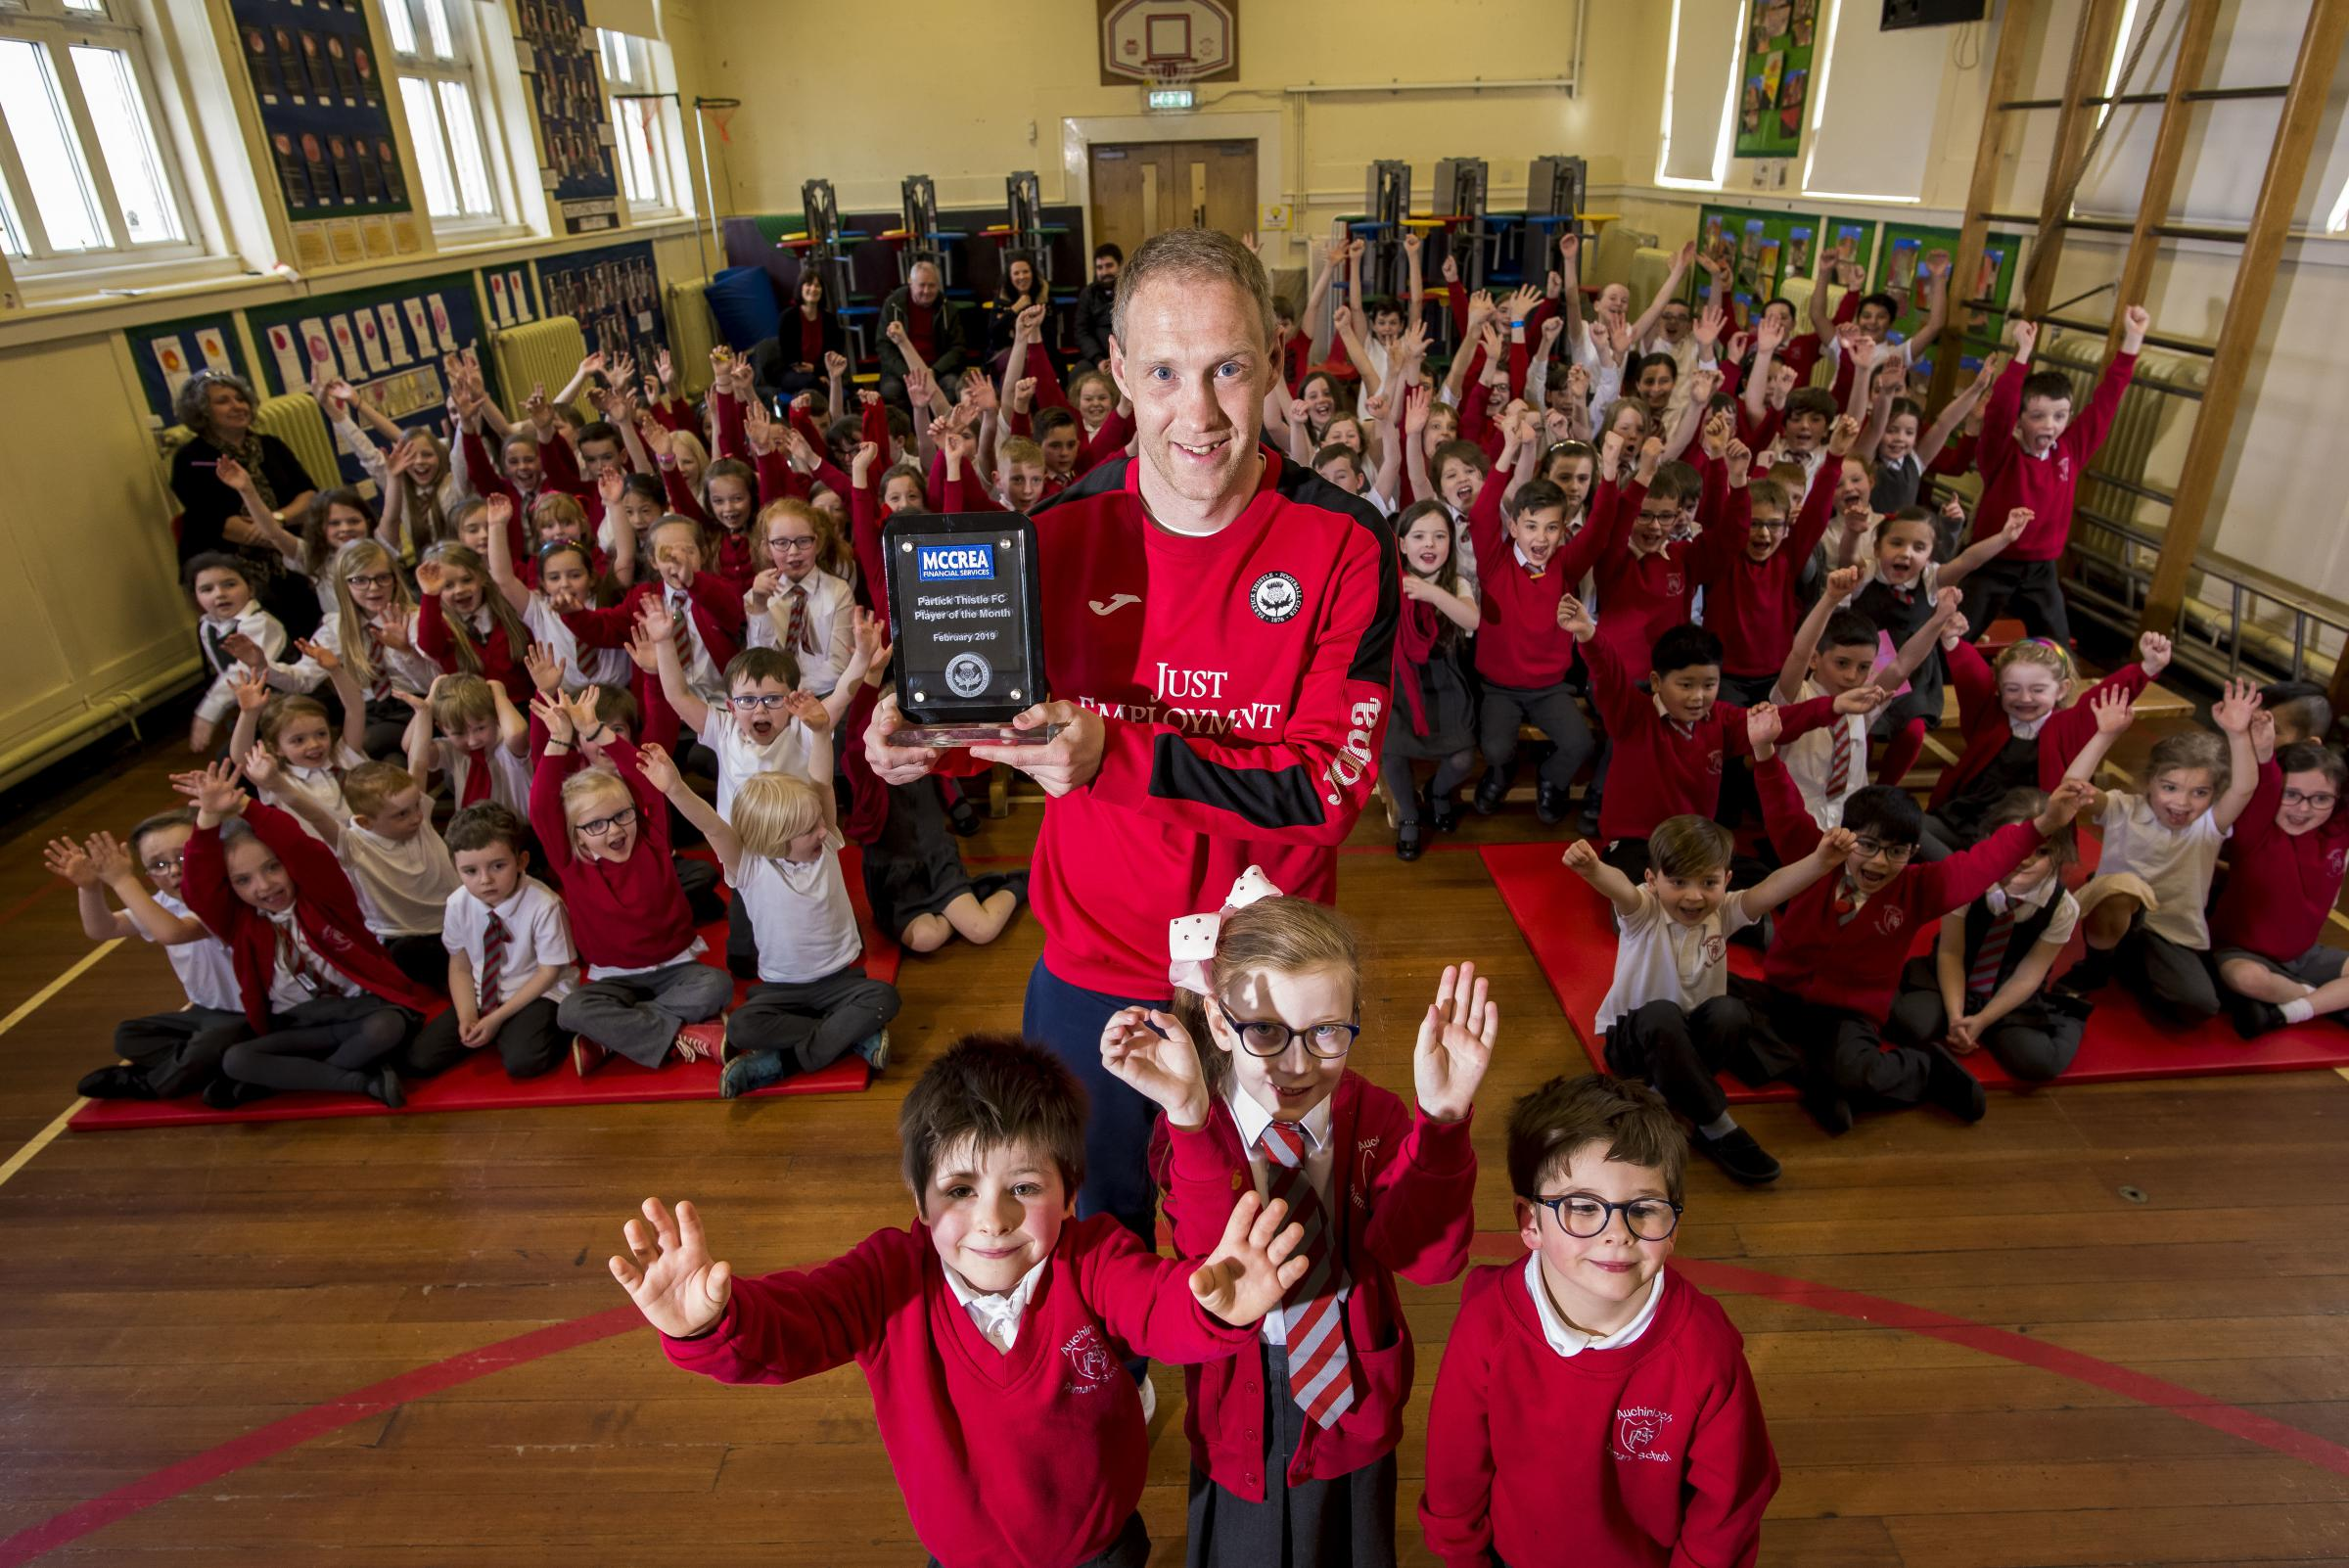 Partick Thistle sponsor McCrea Financial Services ran a competition for the club's February Player of the Month presentation and selected Auchinloch Primary school in North Lanarkshire to present Steven Anderson's award.